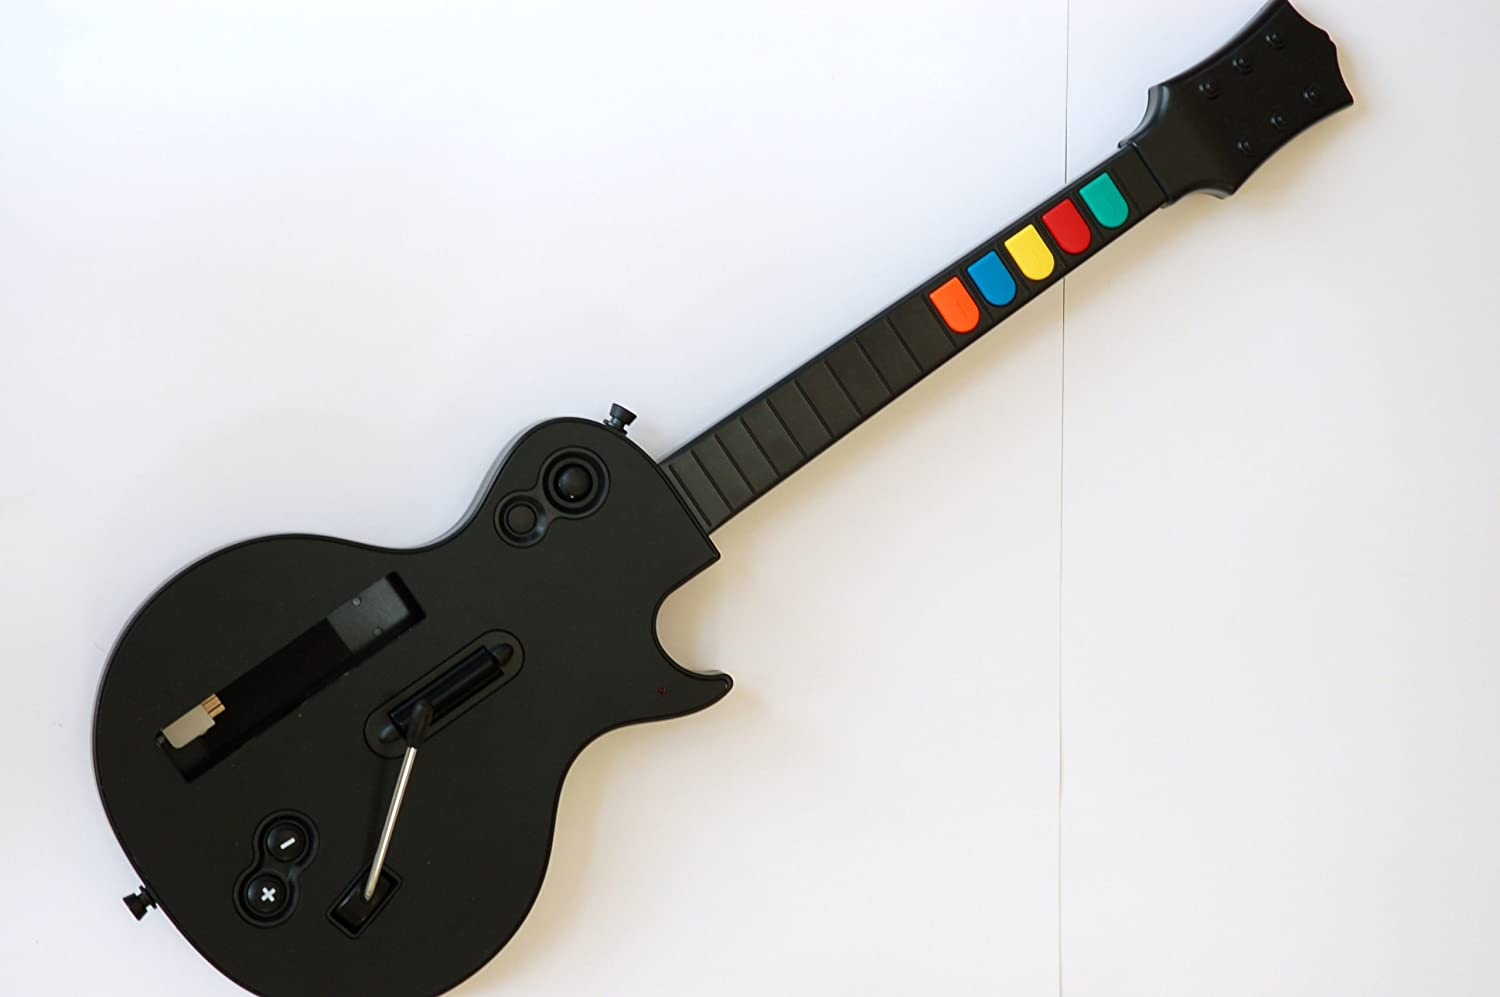 Amazon.com: Wireless Guitar for Wii Guitar Hero and Rock Band Games Color  Black: Video Games